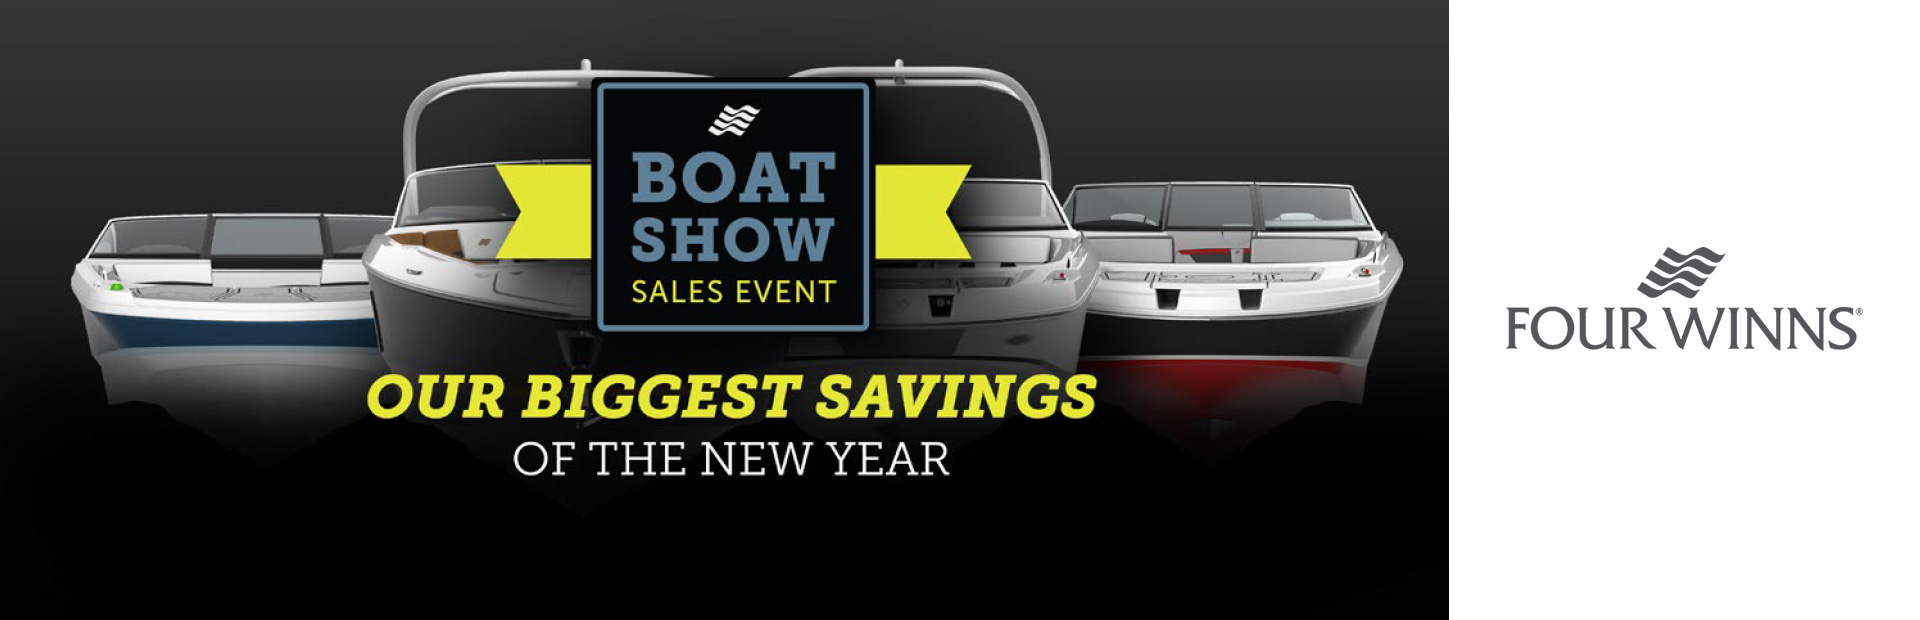 Four Winns: Boat Show Sales Event